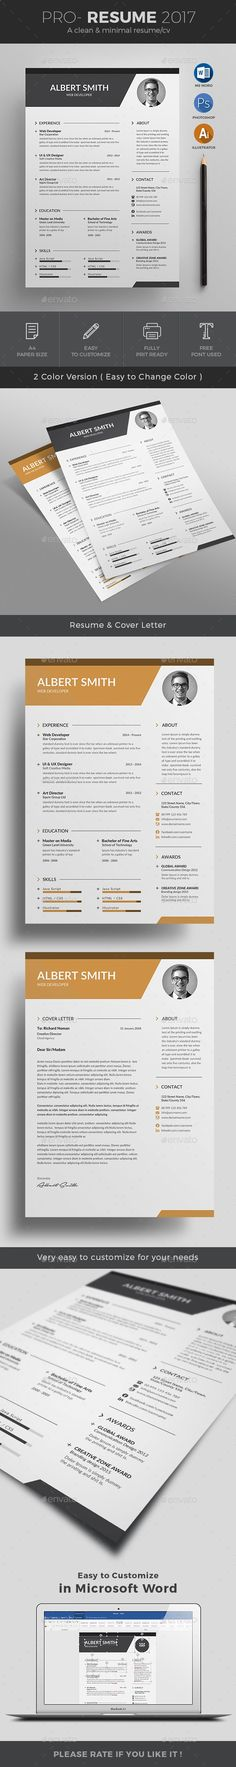 buy resume by on graphicriver pro resume cv 2017 template to help you land that great job the flexible page designs are easy to use and customize